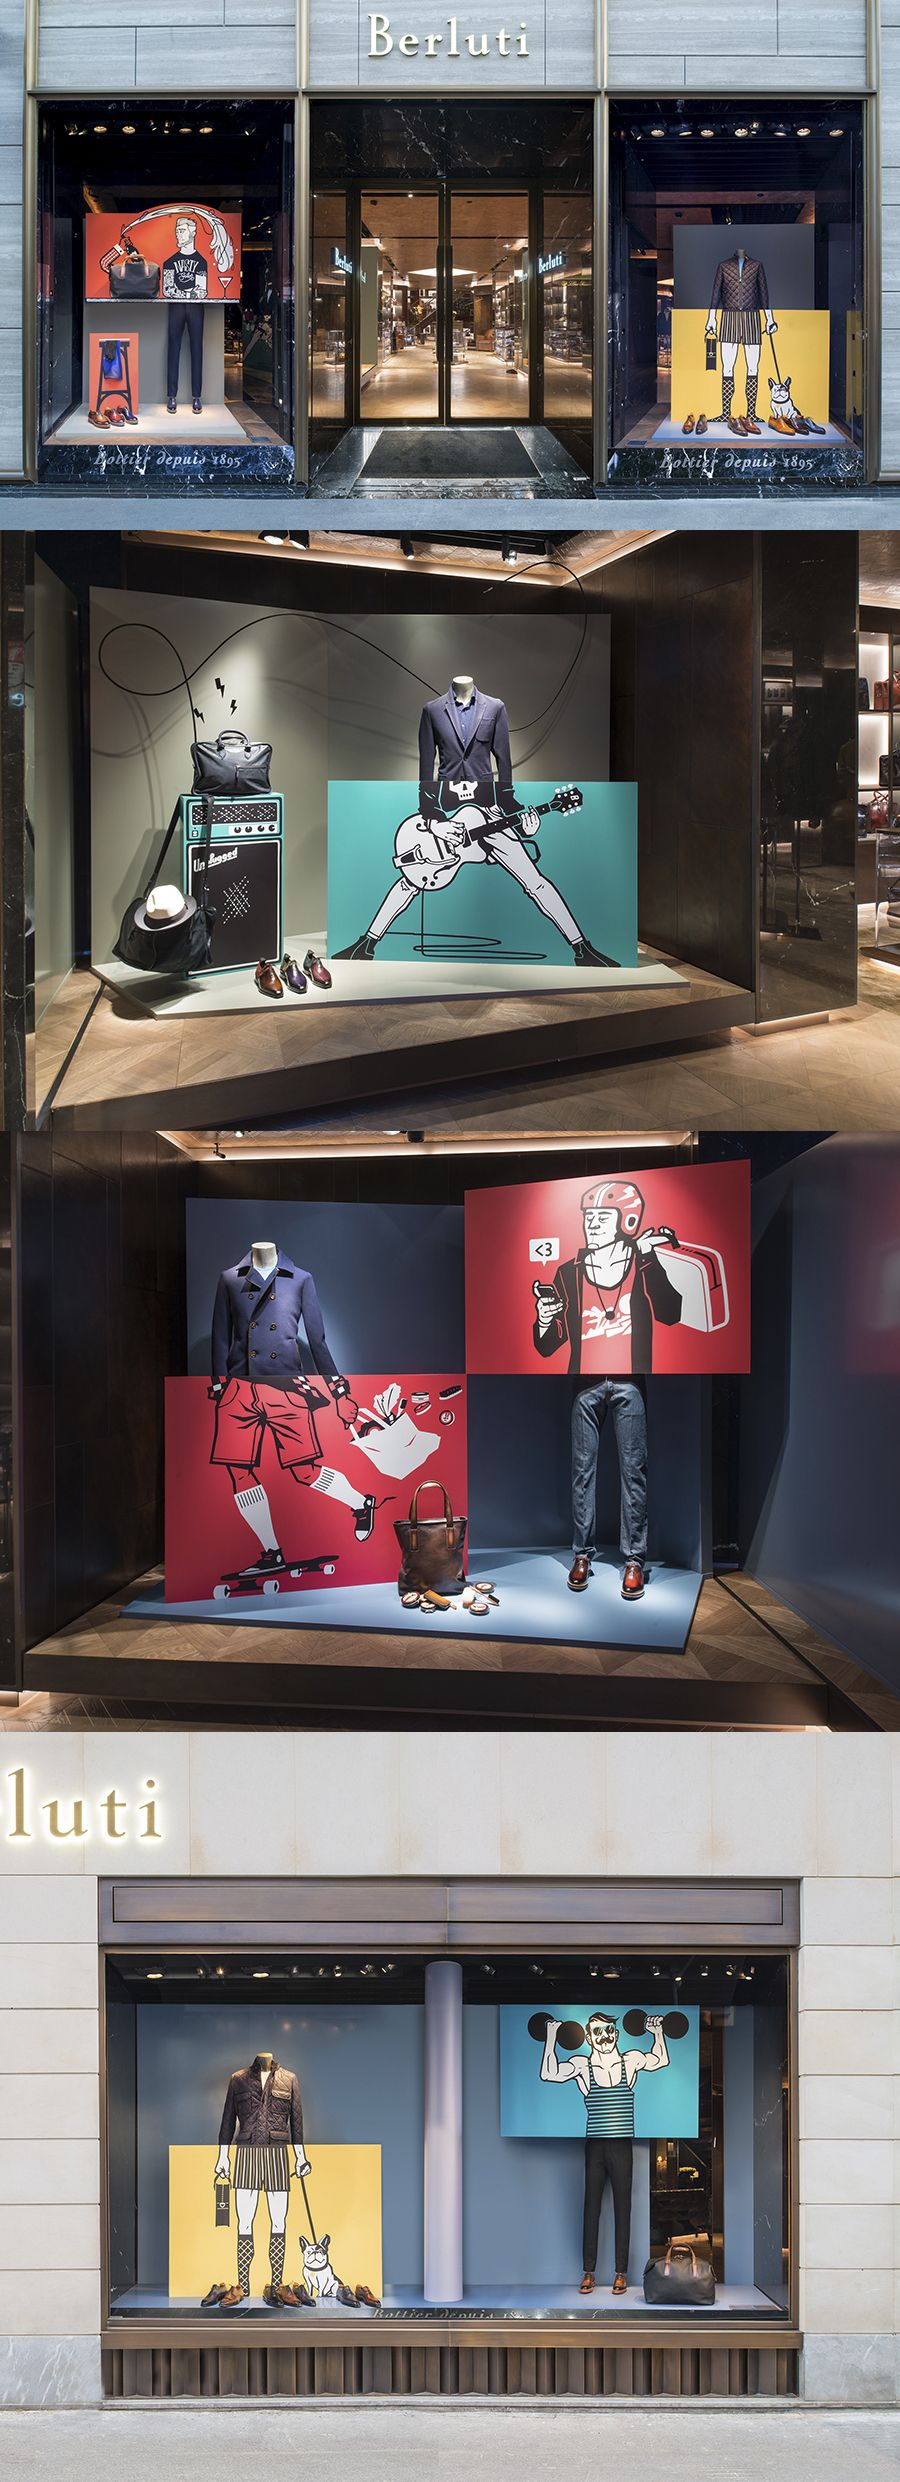 Fenster Stores Illustrations For Berluti Stores Window Display Stores